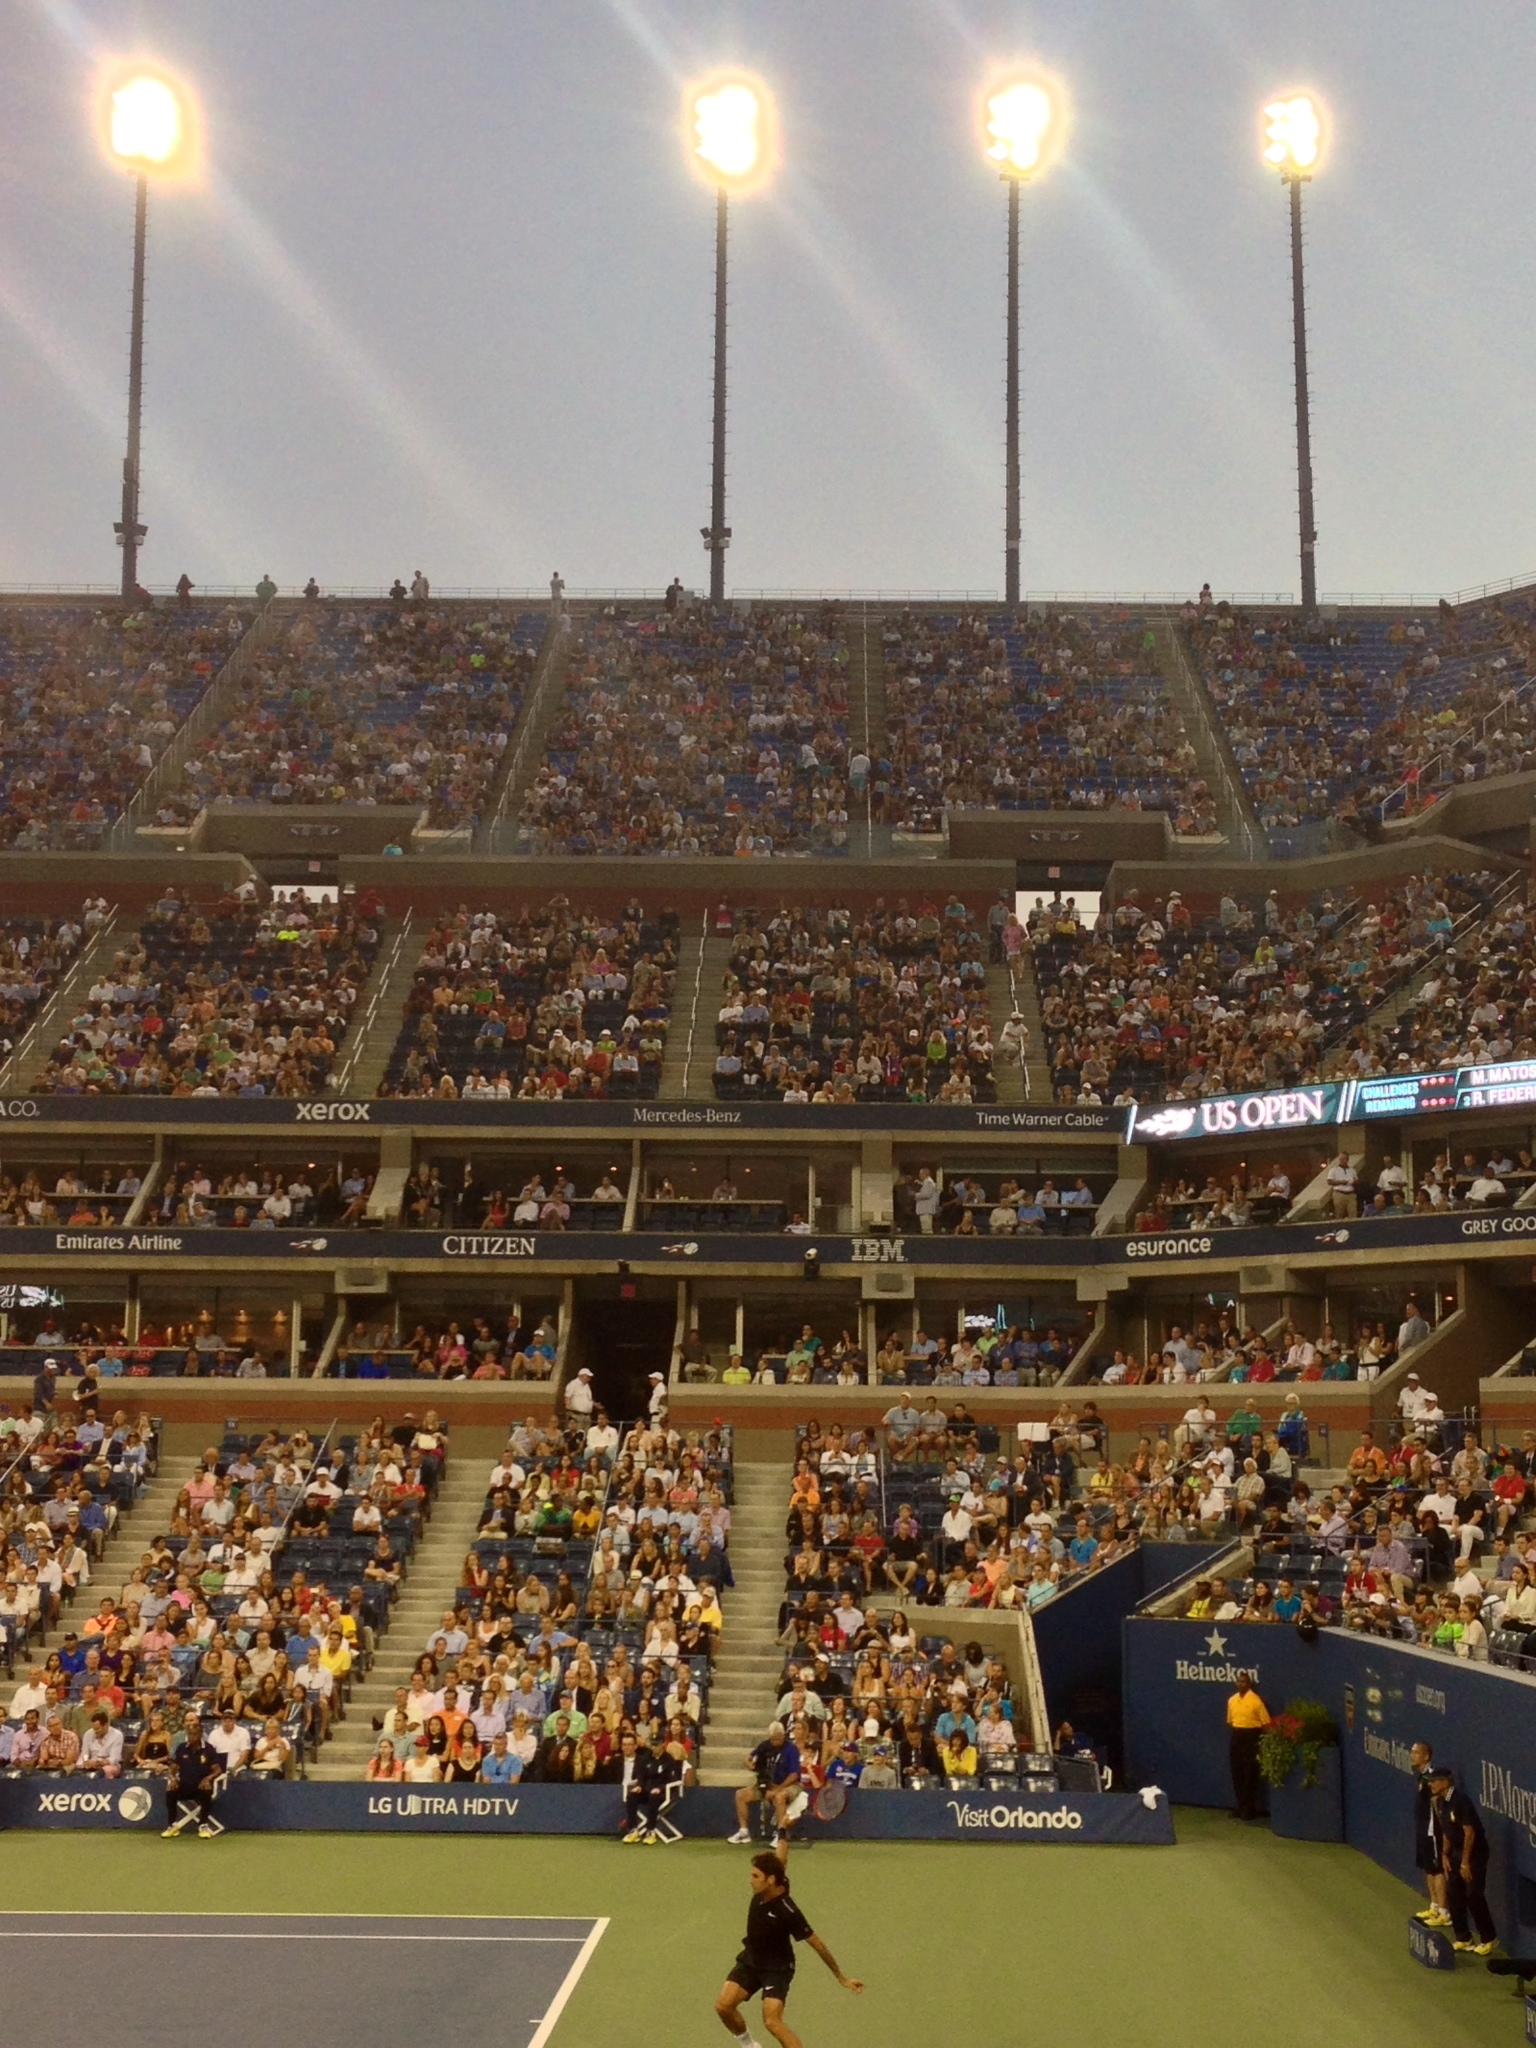 Roger Federer playing Marinko Matosevic of Australia at Arthur Ashe Stadium during first round of US Open.